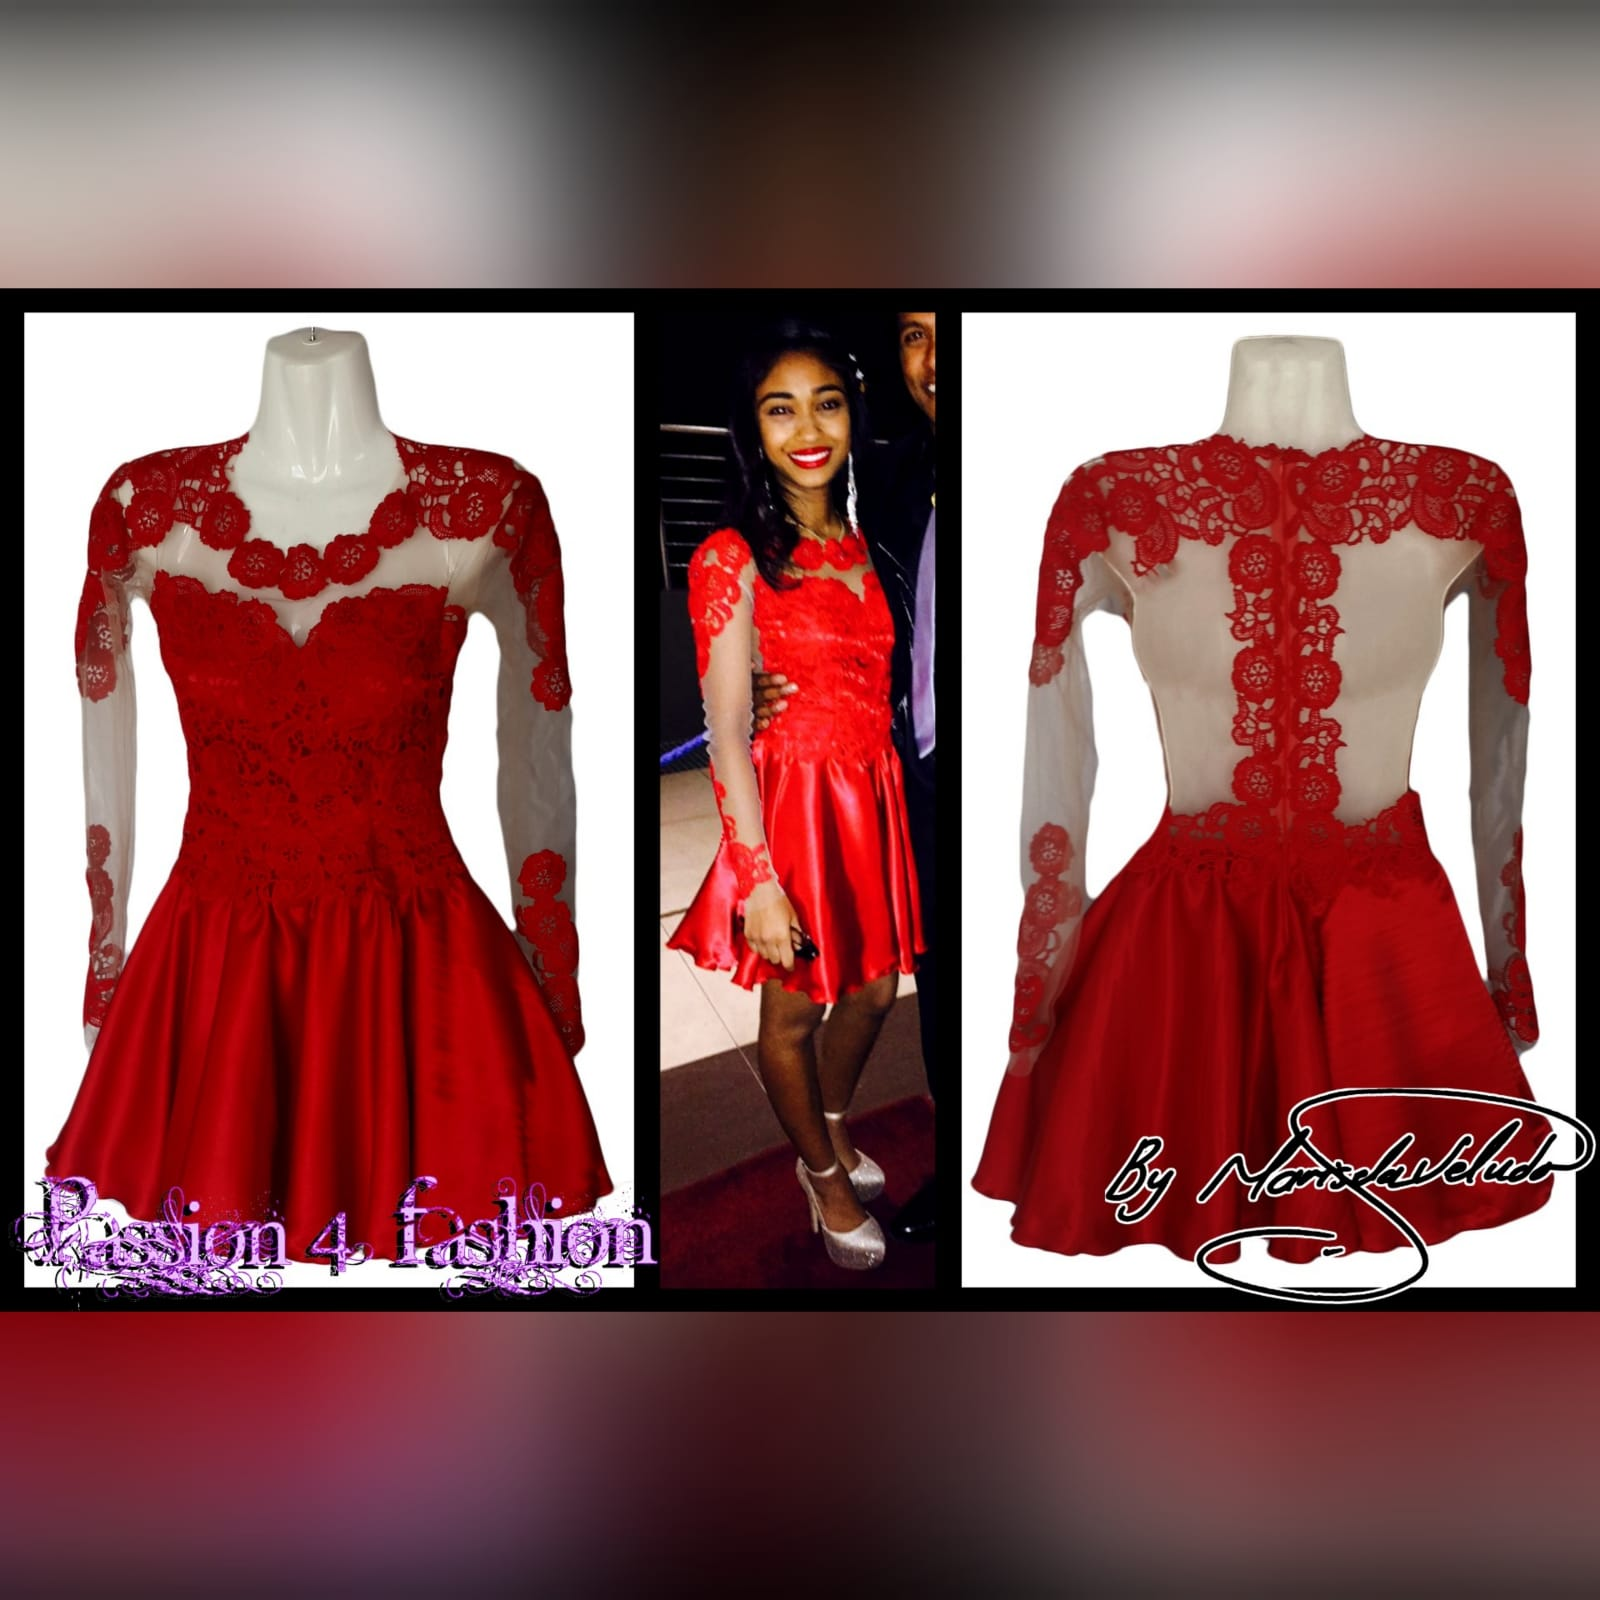 21st birthday party short evening dress 5 short red lace evening dress for a 21st birthday party. Dress with an illusion back detailed with lace, neckline and sleeves, bodice fully laced